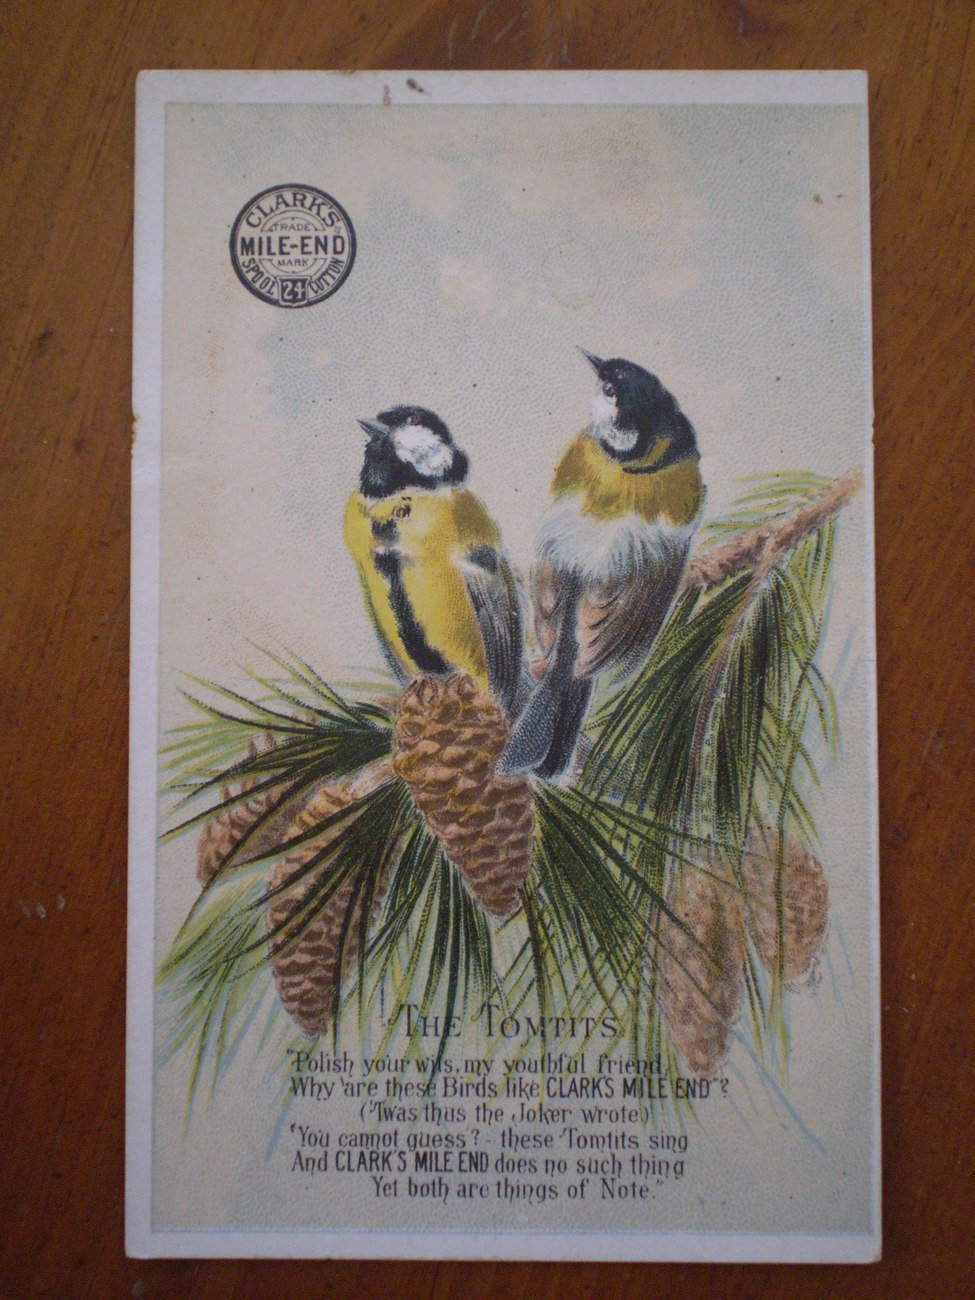 Clarks Mile End The Tomtits Birds Trading Trade Card